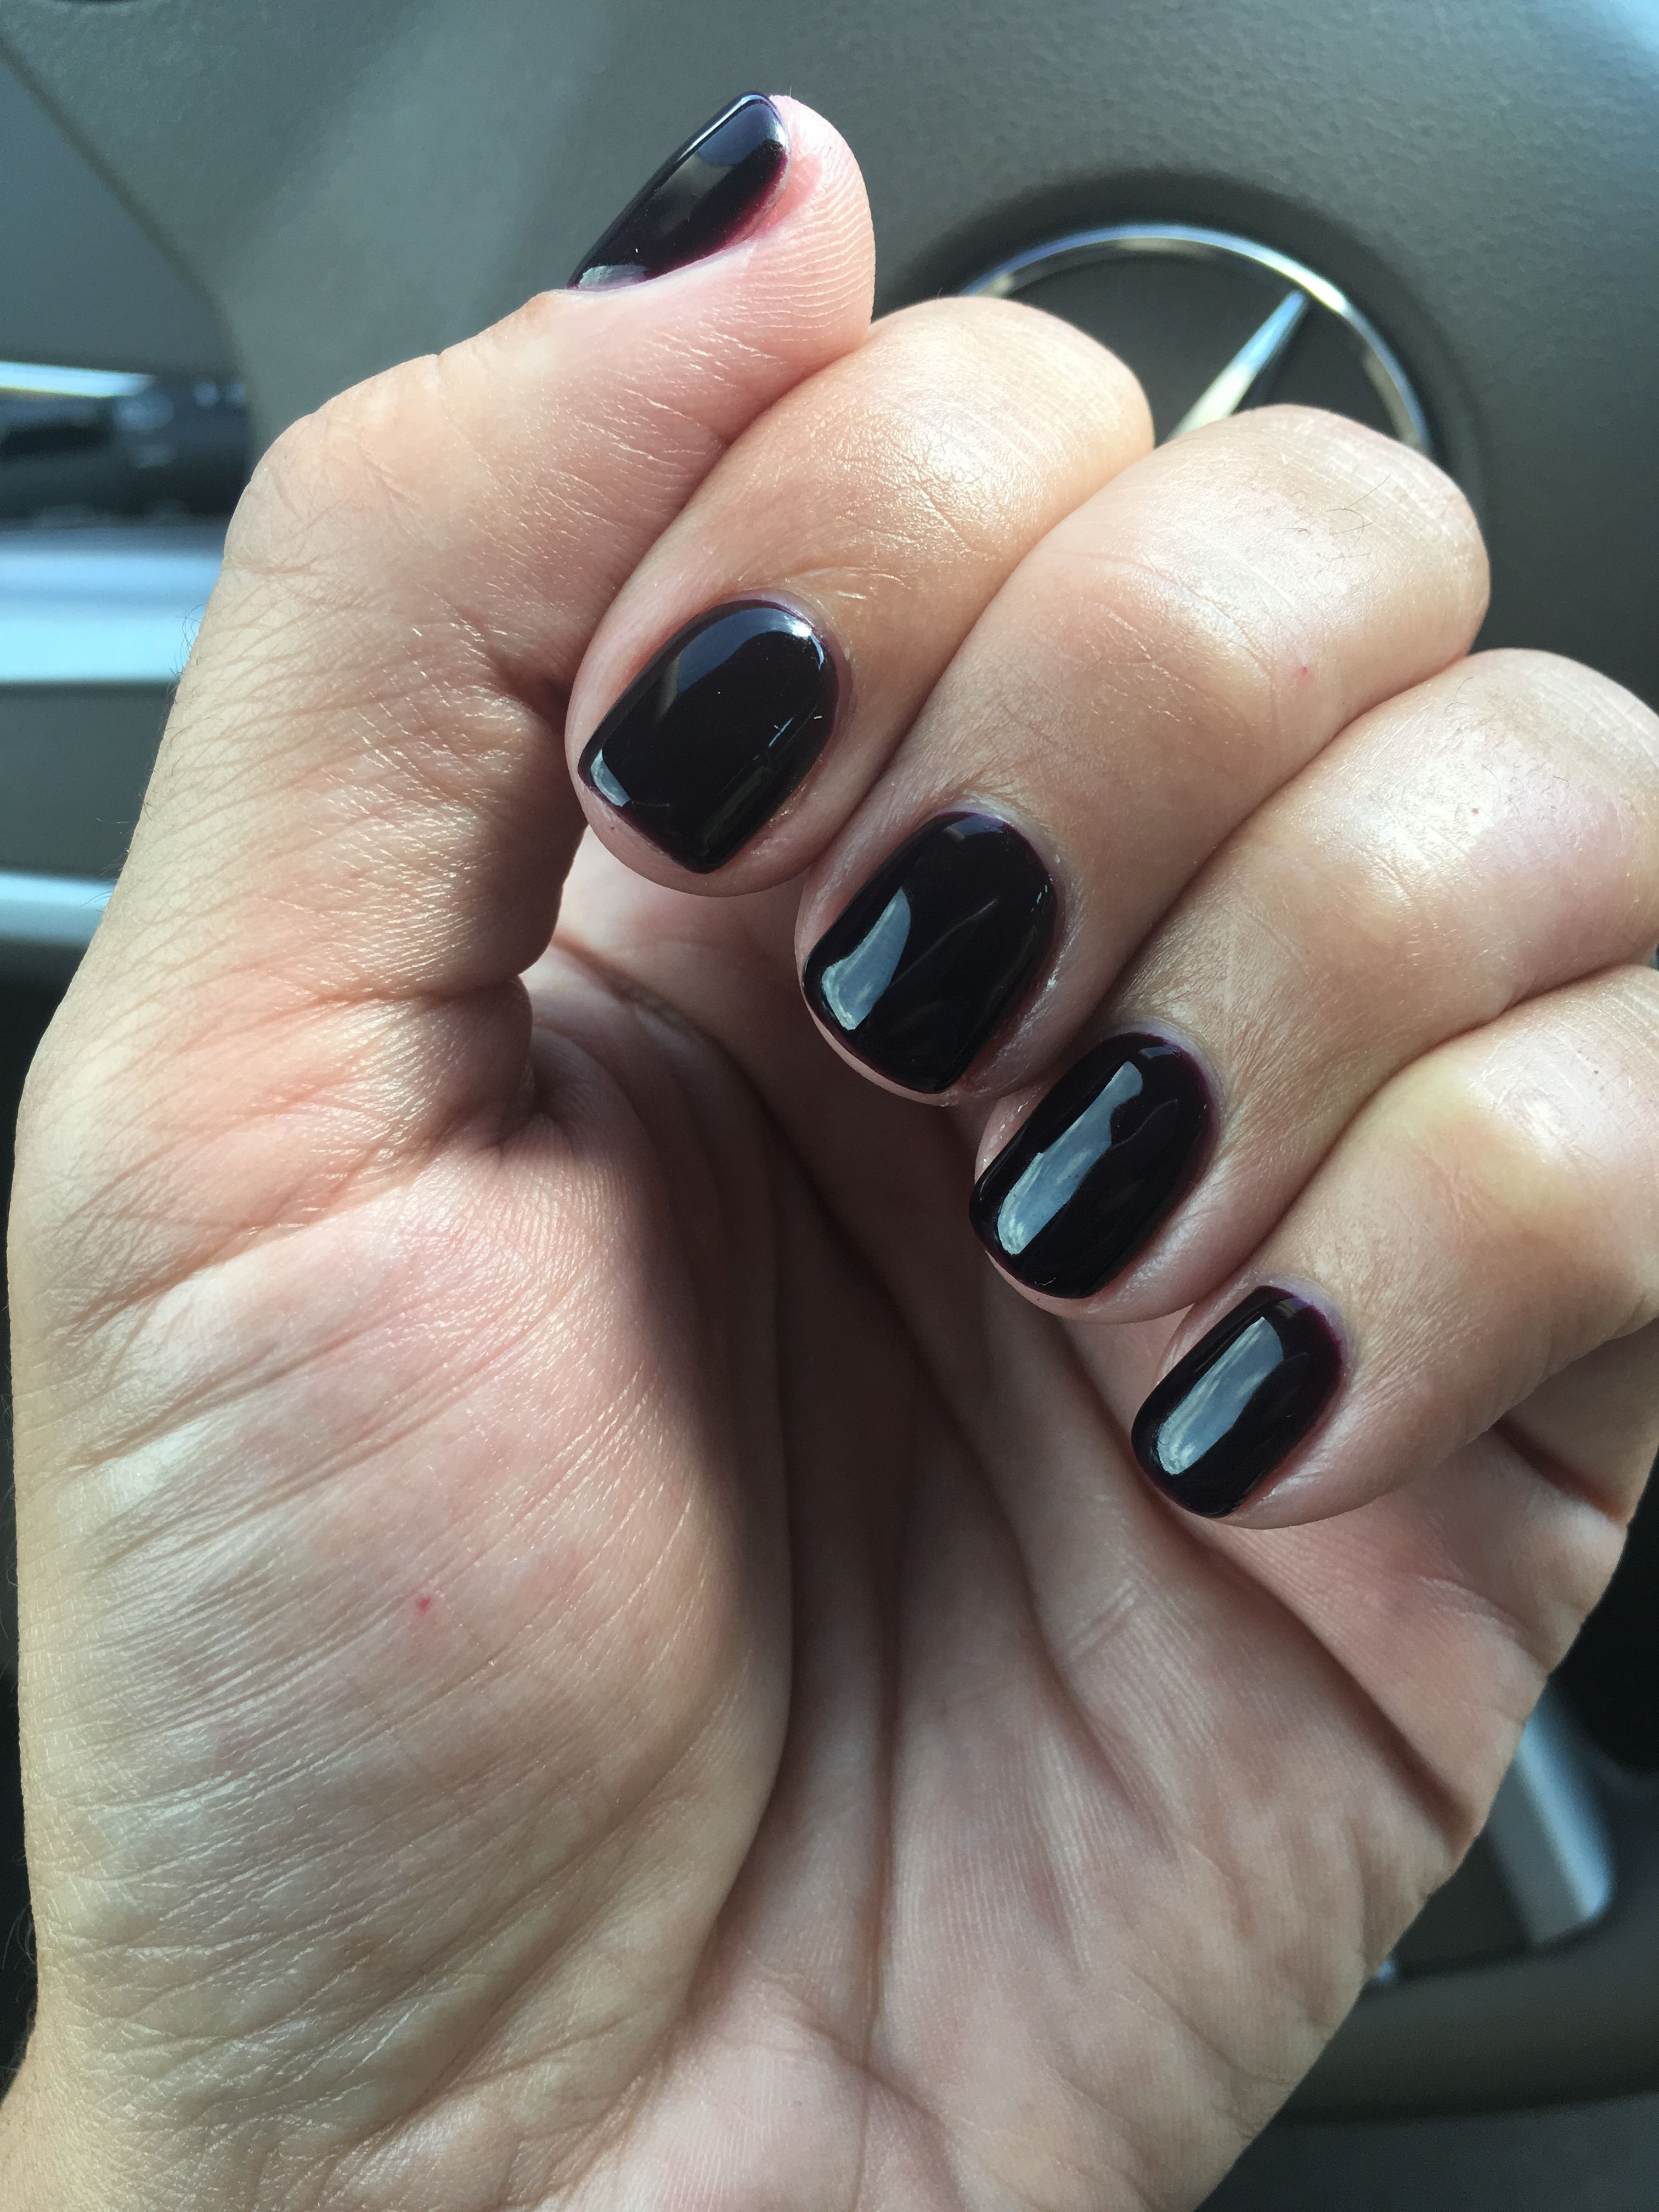 Perfect Match - Marilyn Merlot | My Gel Nails | Pinterest | Perfect ...